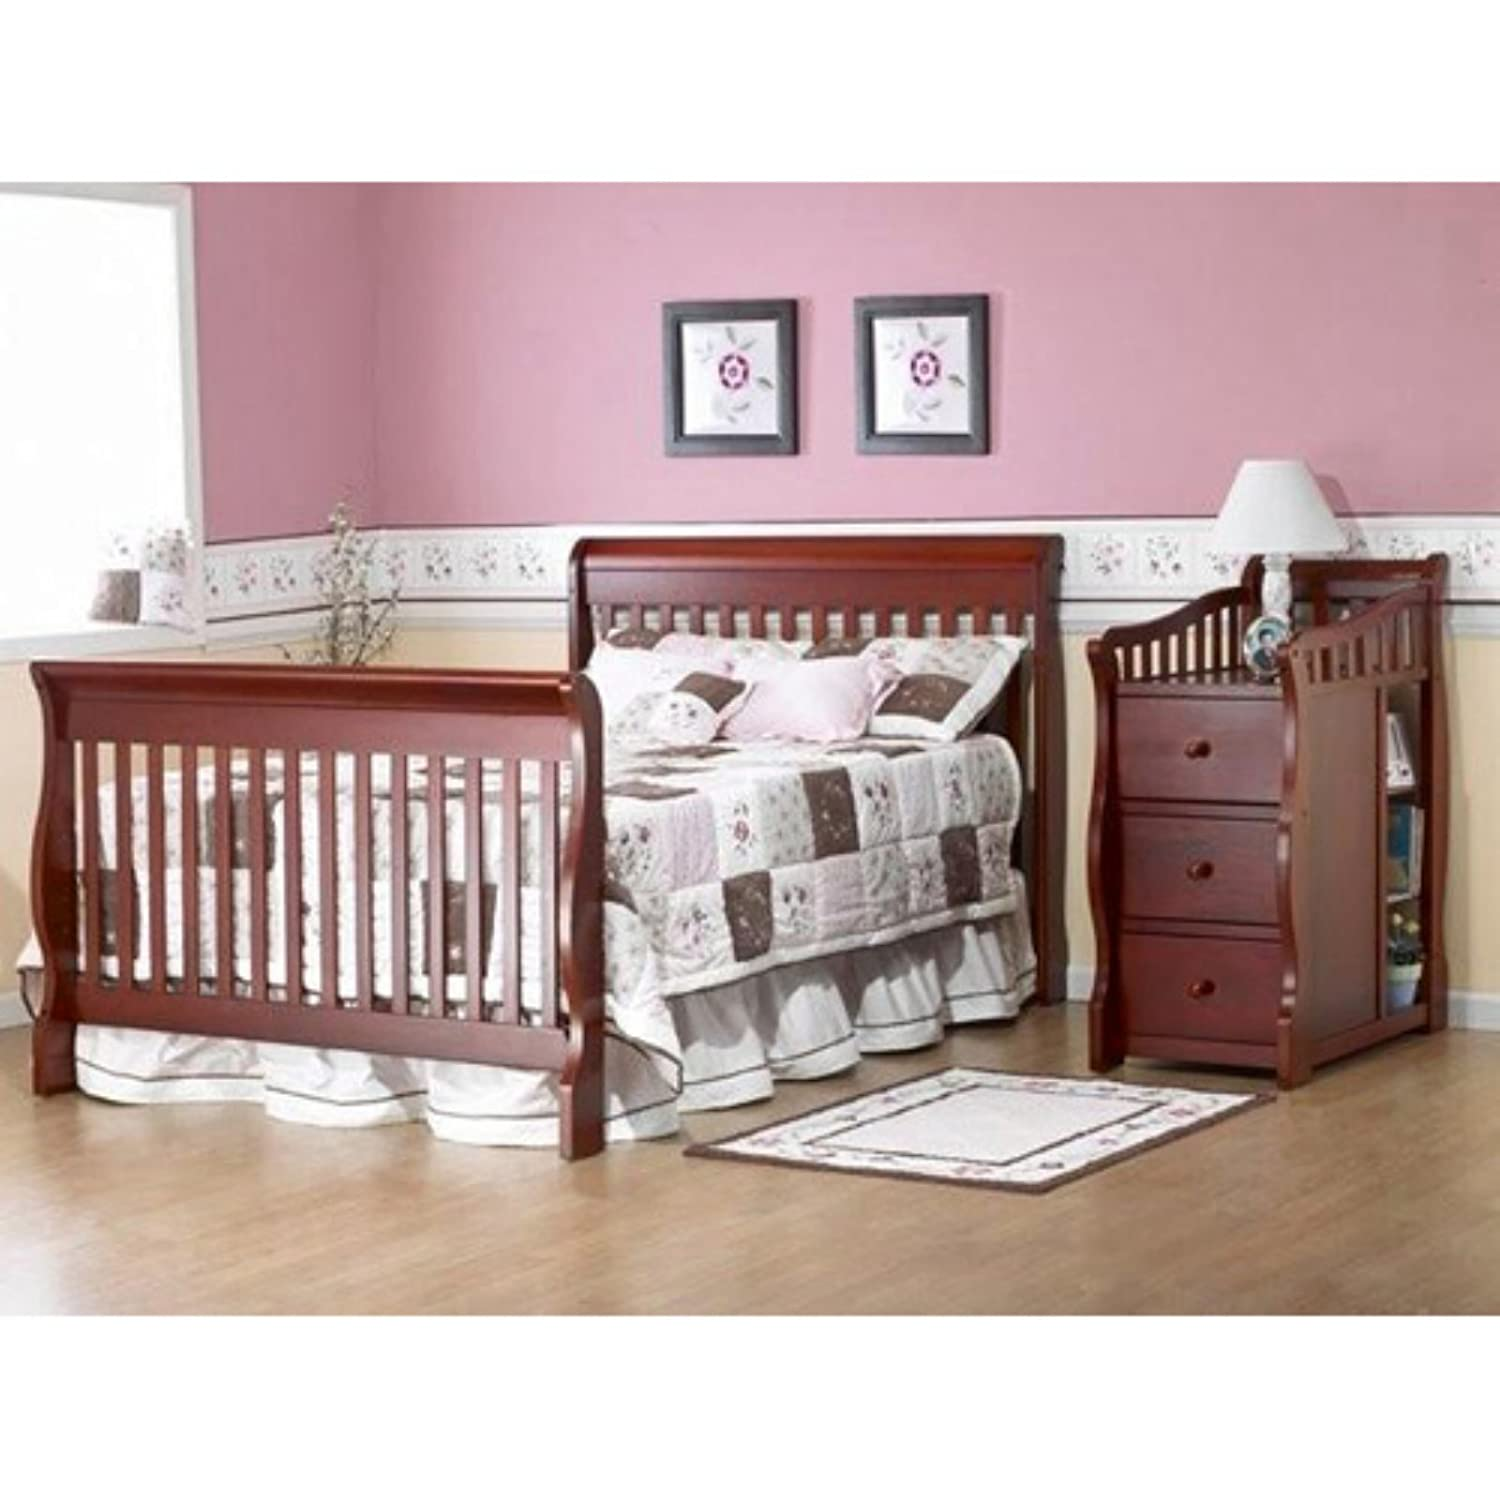 manor million conversion in crib w table louis and changing toddler kit baby dollar convertible grey product bed